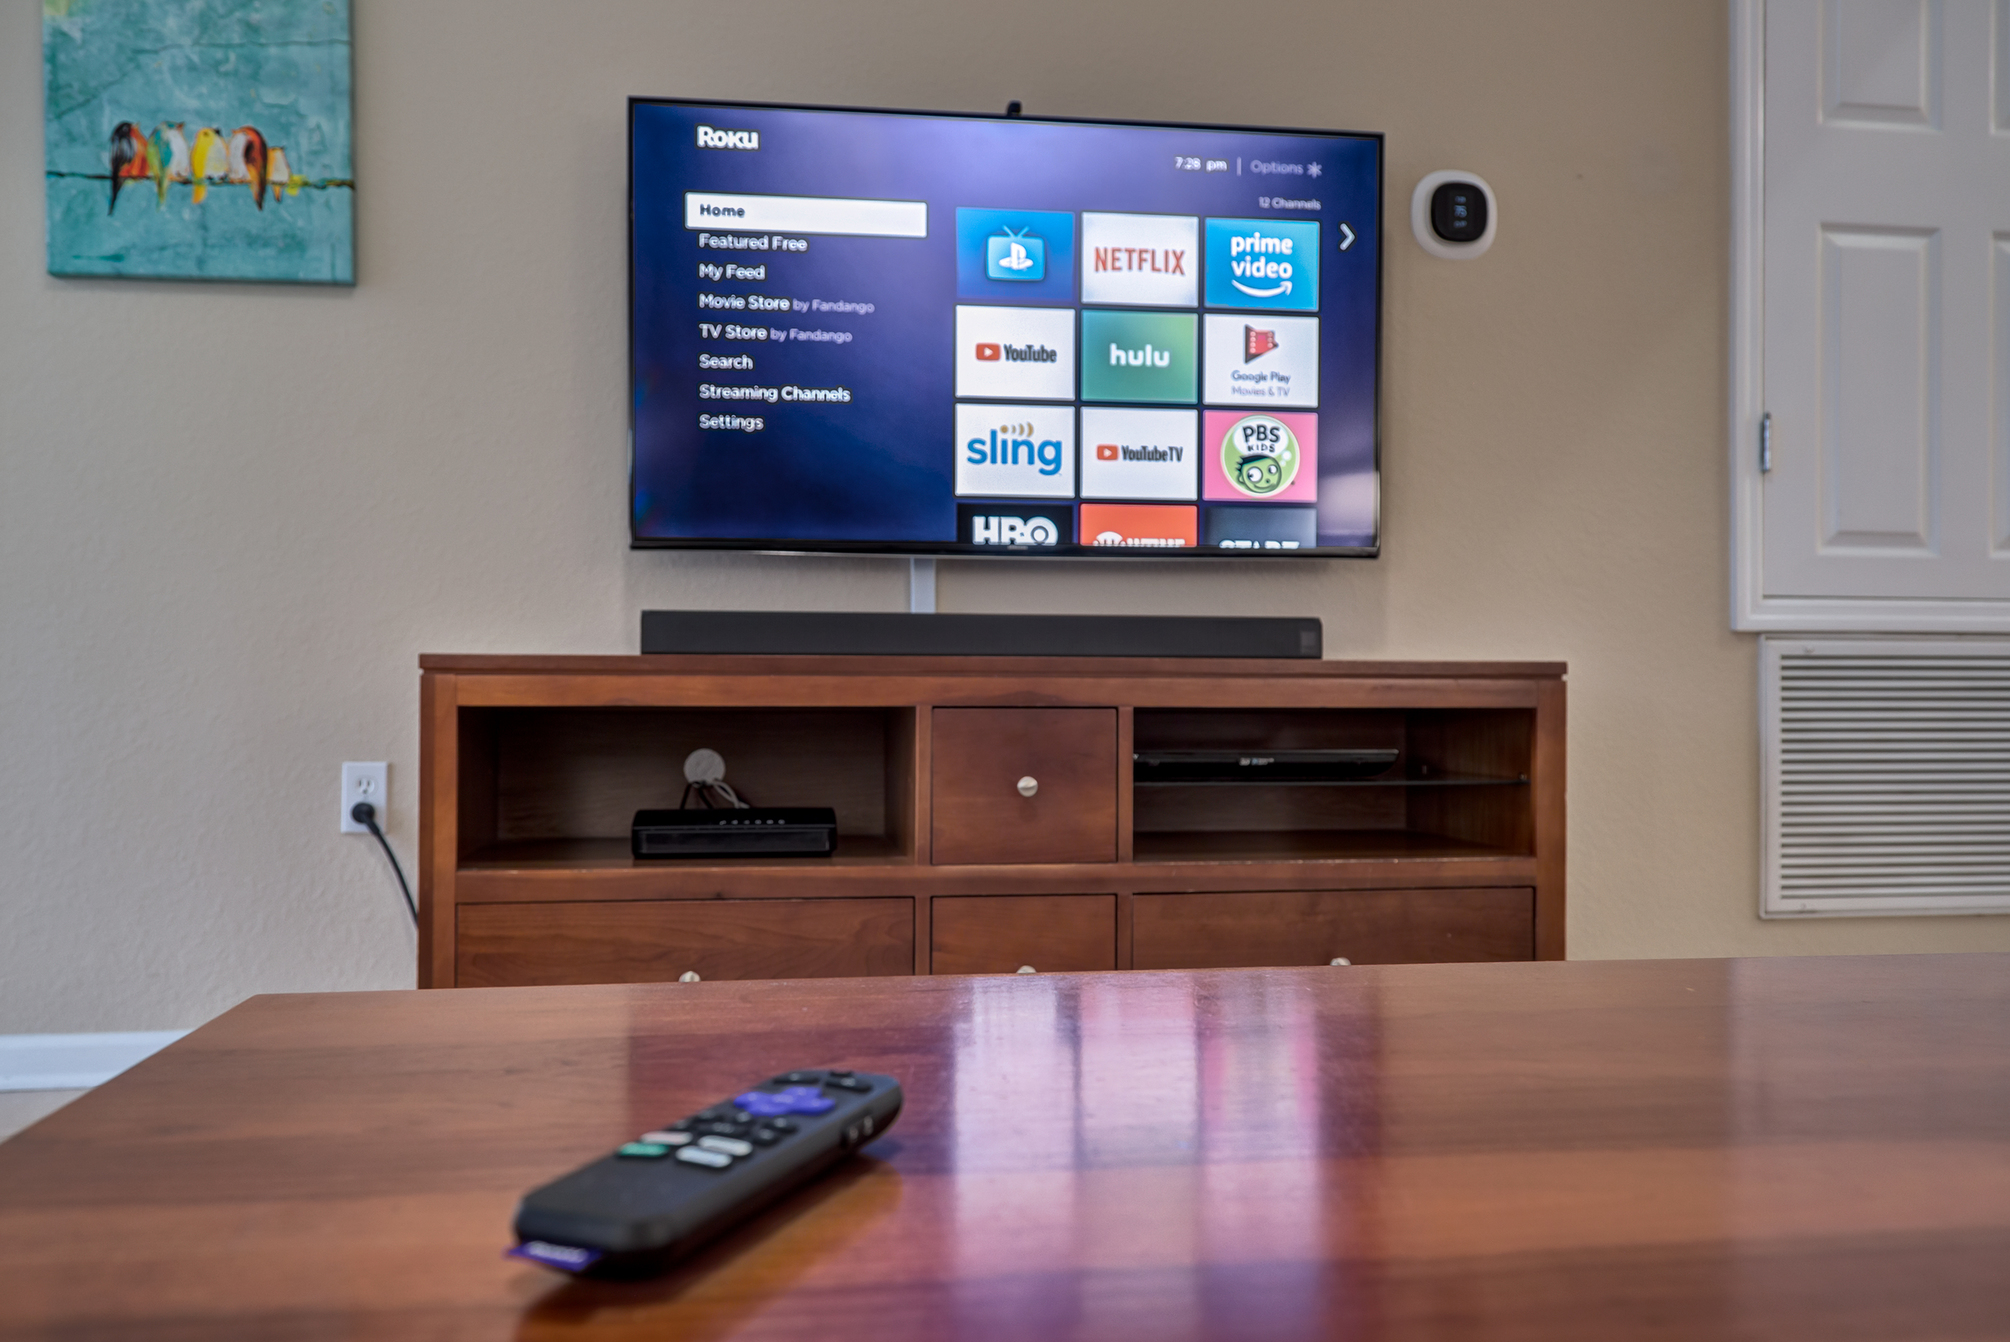 Living Room Television and Media Console